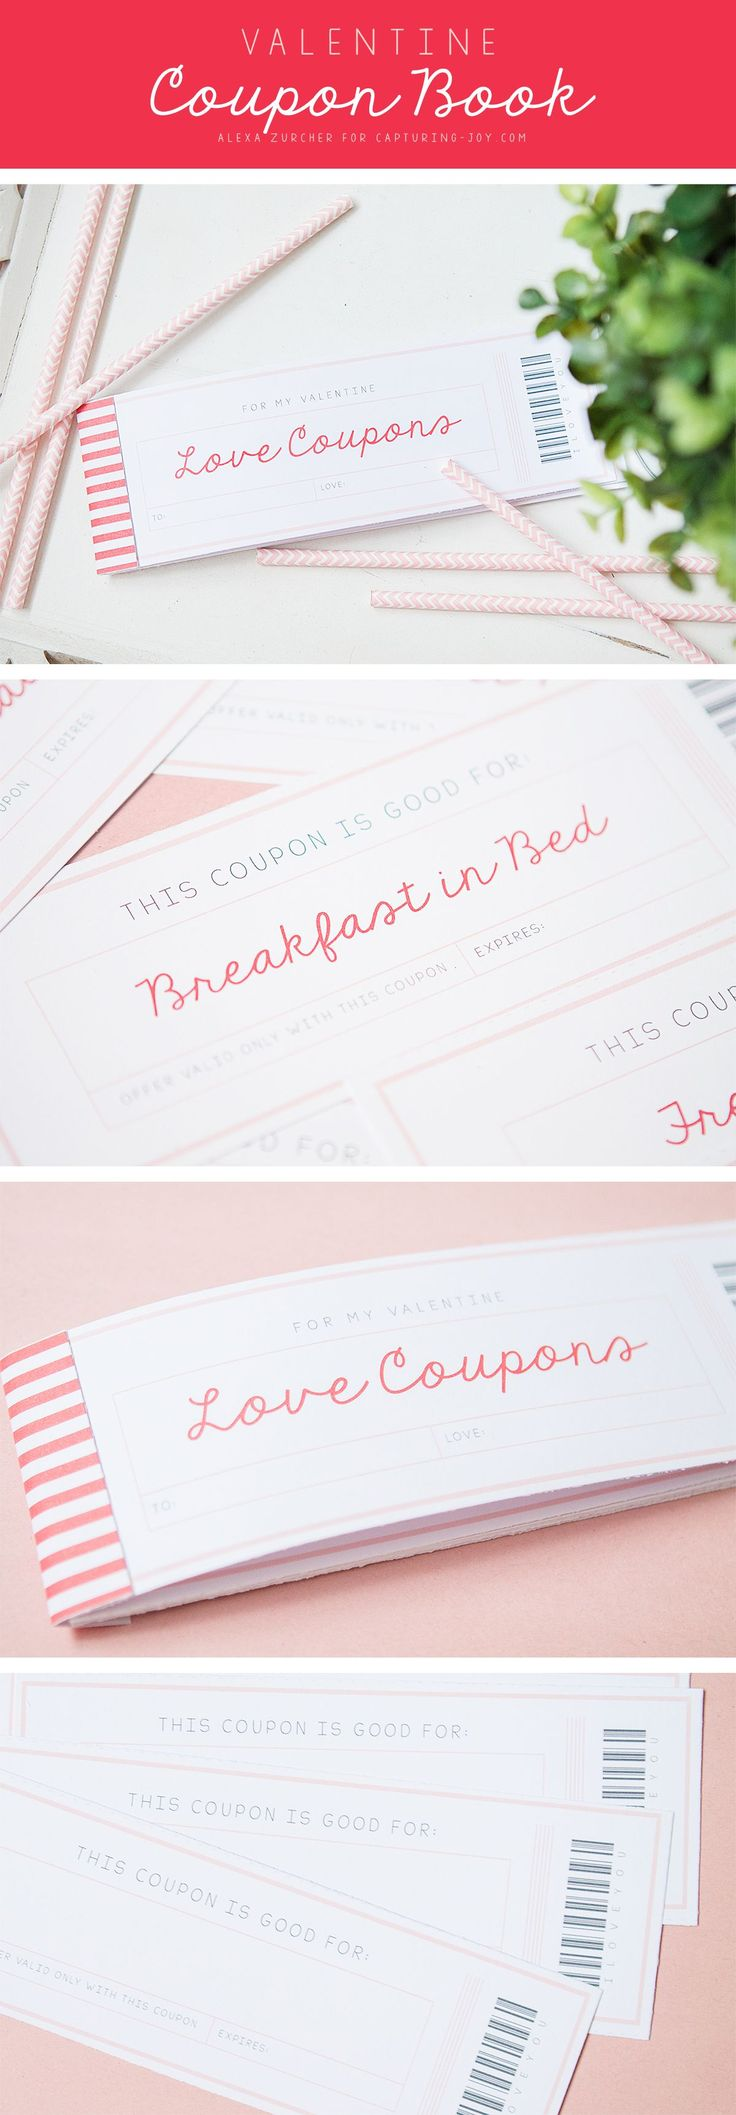 Struggling with what to buy a girl who has everything?This Valentine's Day Coupon Book is a great idea!